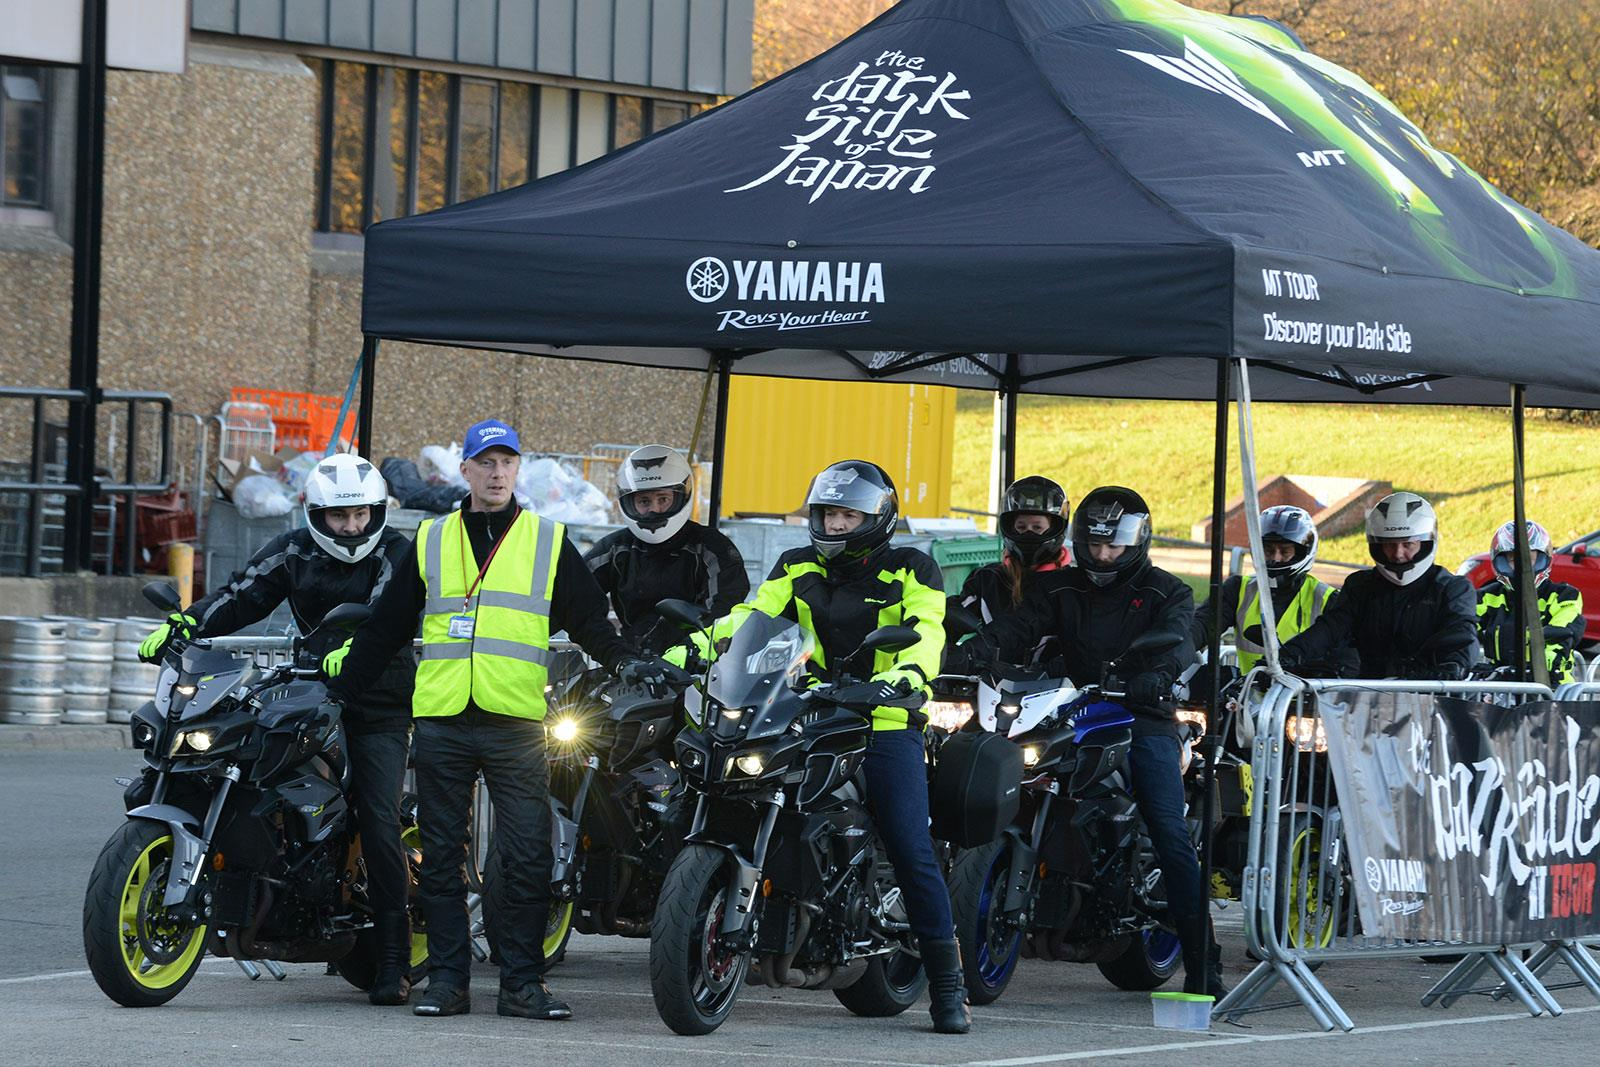 Yamaha Darkside MT tour